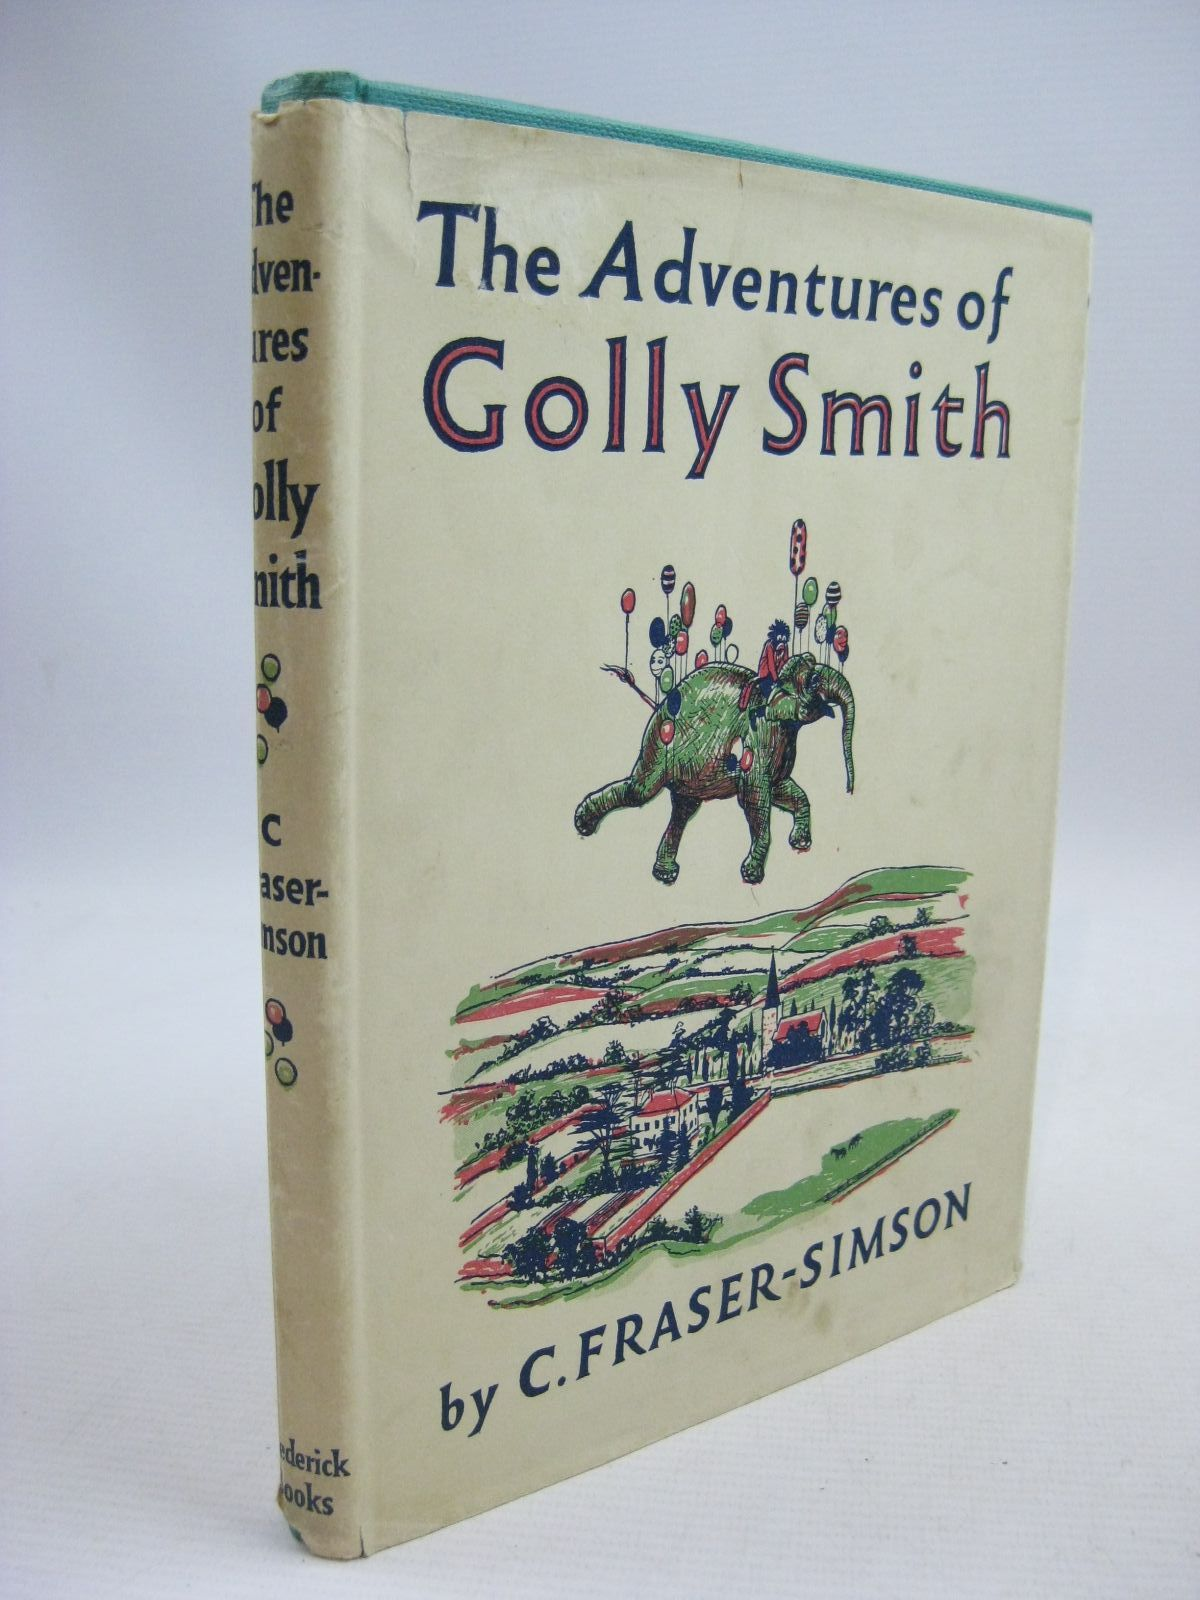 Photo of THE ADVENTURES OF GOLLY SMITH written by Fraser-Simson, C. illustrated by Wilson, Maurice published by Frederick Books, Blackie & Son Ltd. (STOCK CODE: 1315429)  for sale by Stella & Rose's Books